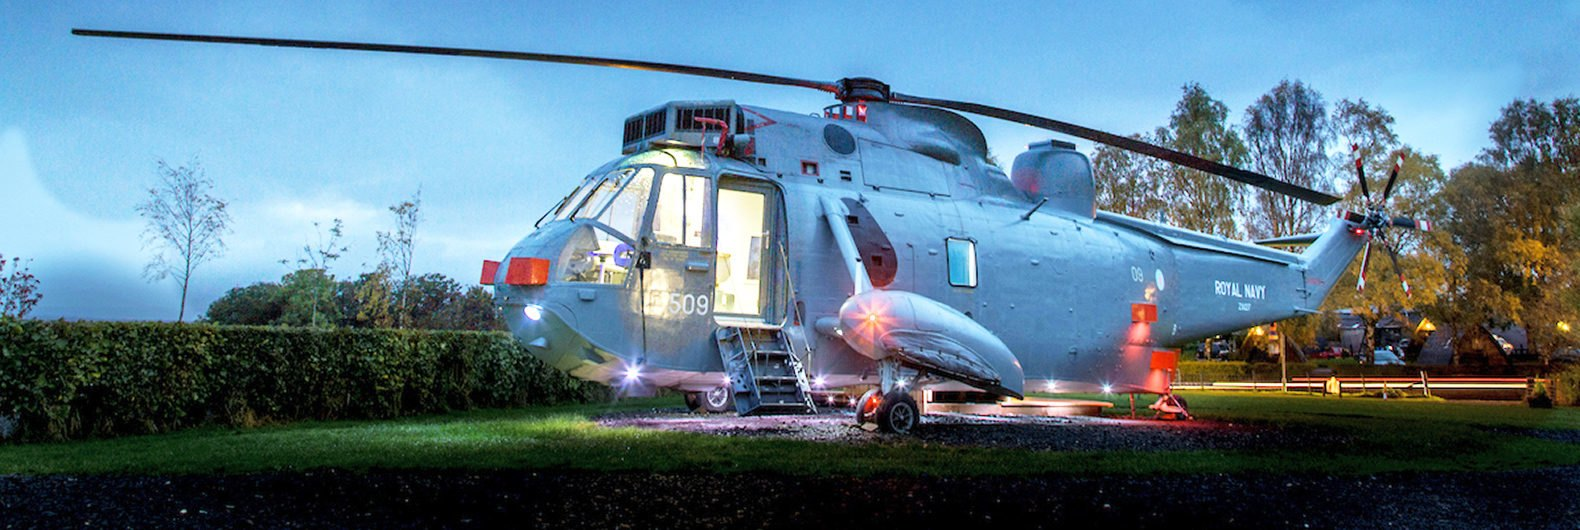 Royal Navy Helicopter Transformed Into An Amazing Hotel Room In Scotland